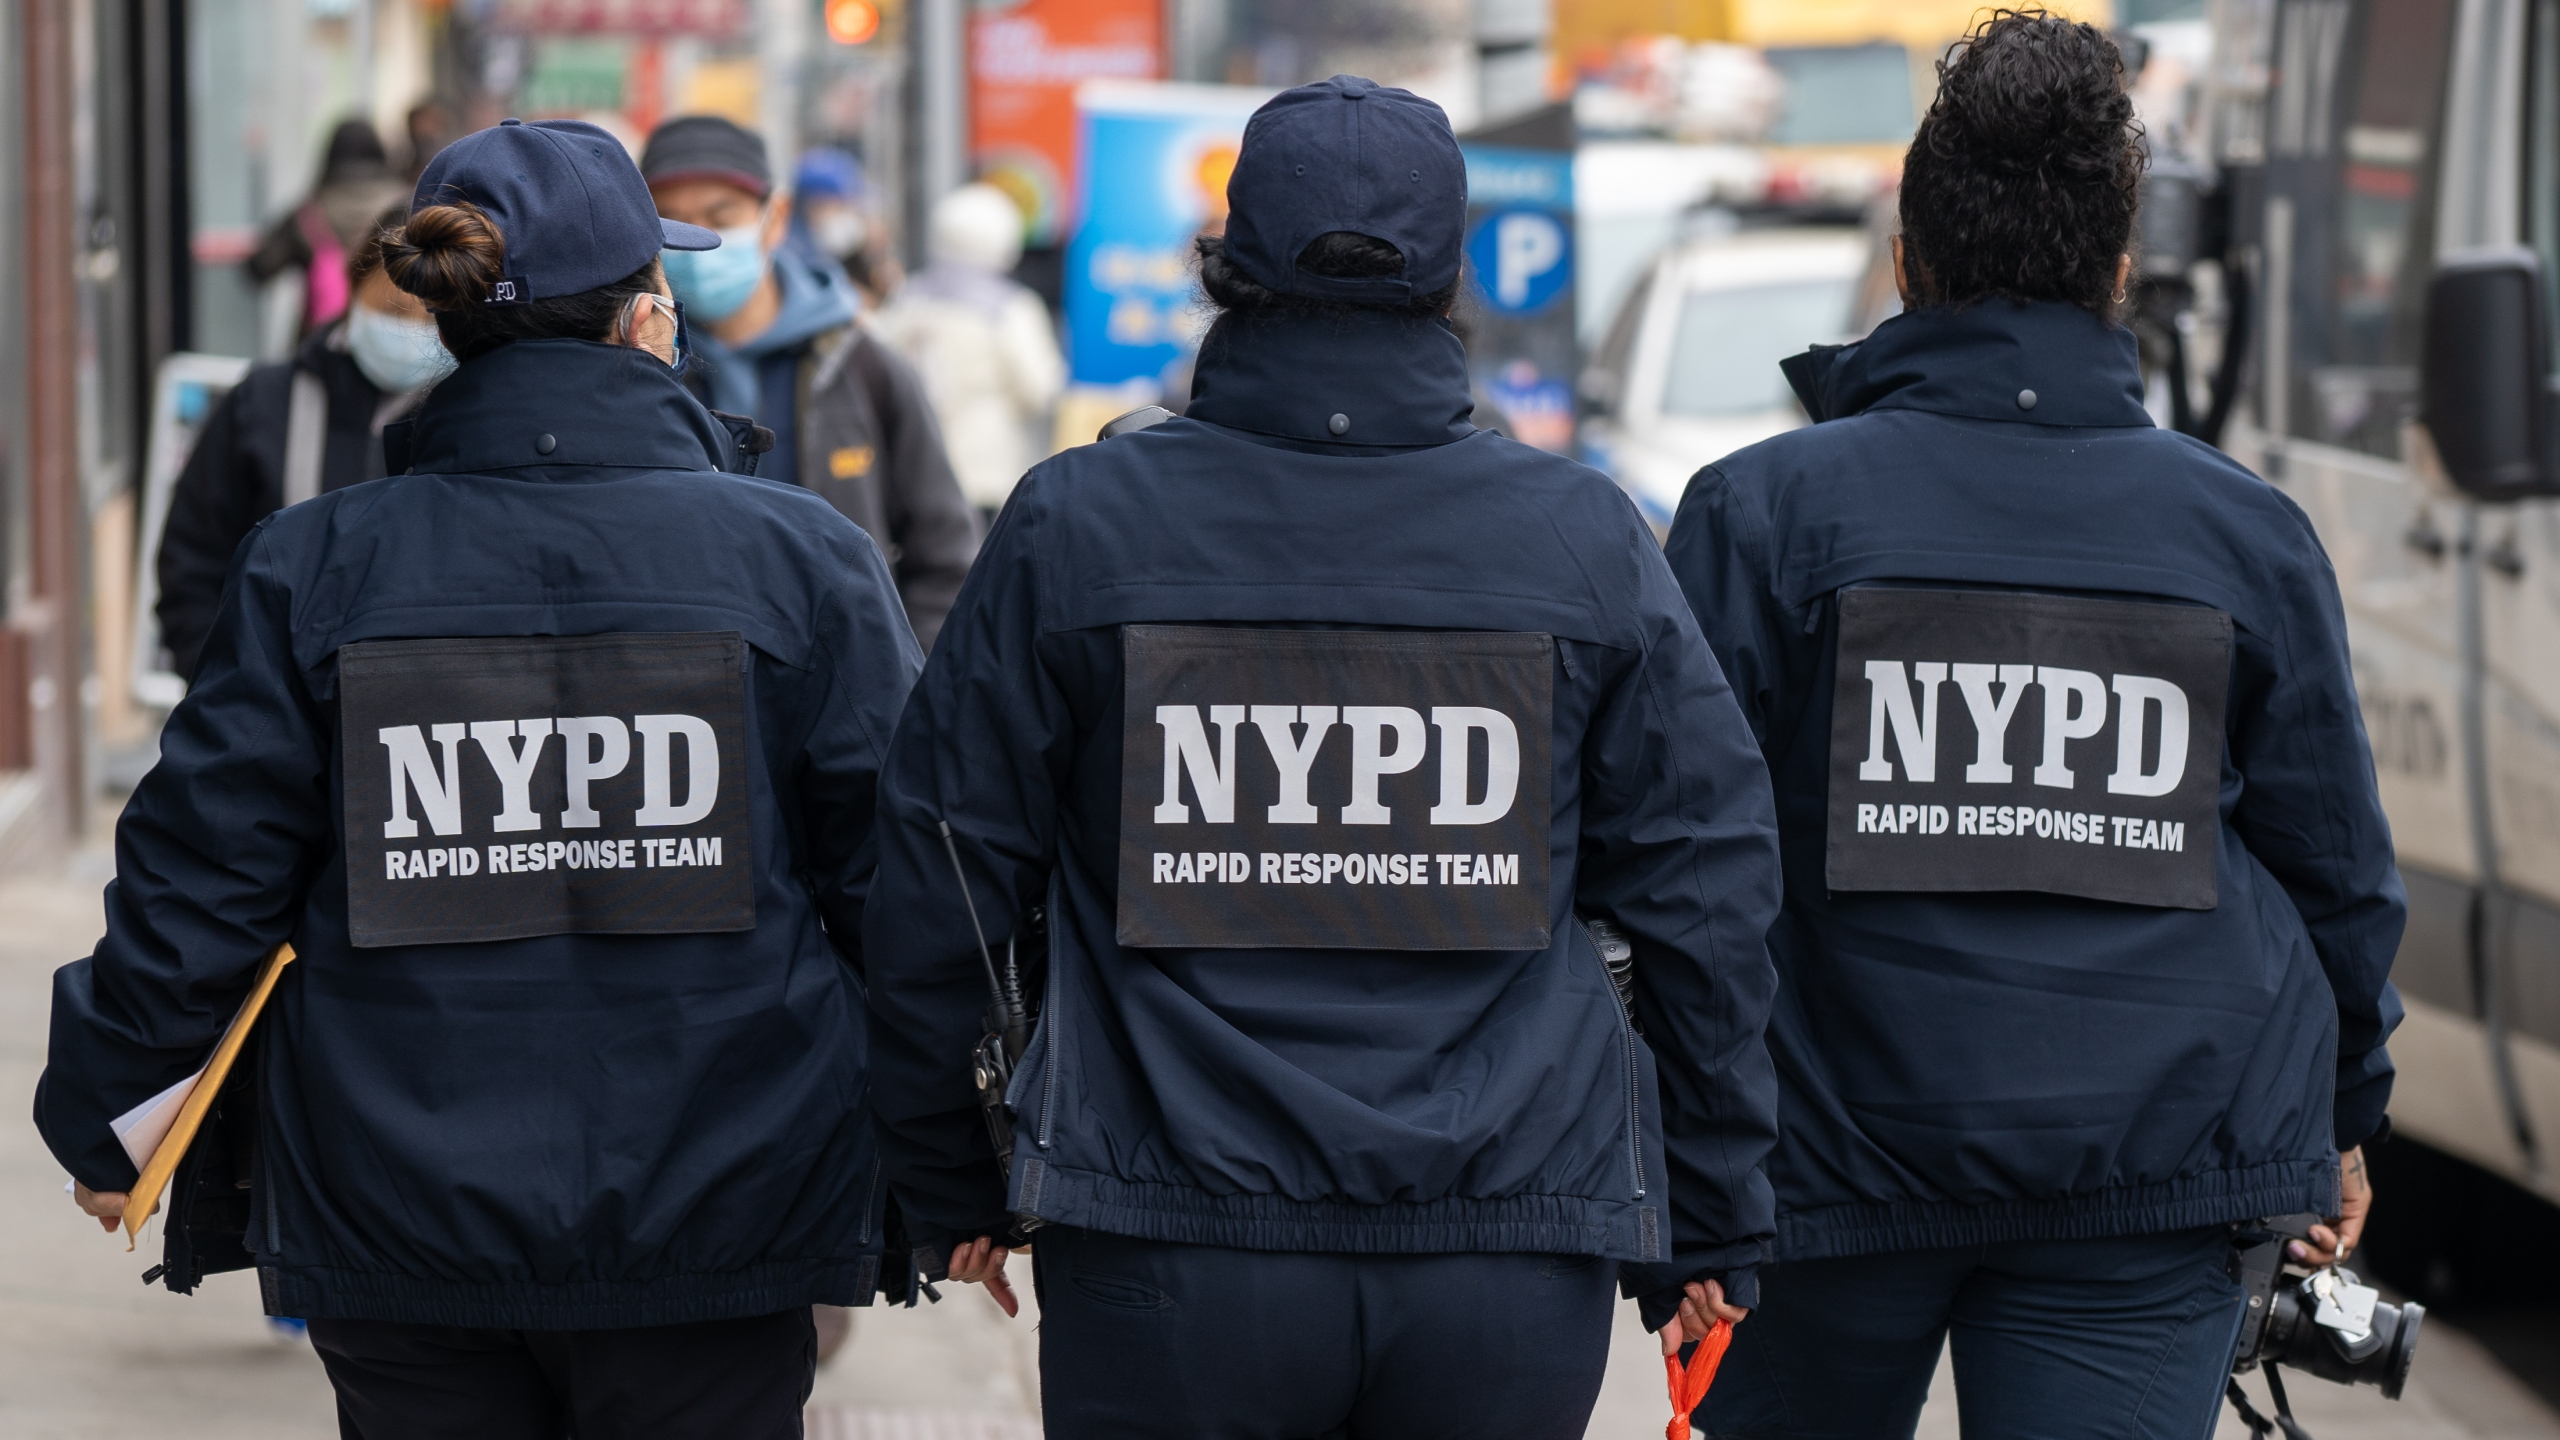 NYPD officers hand out information about hate crimes in Asian communities on March 17, 2021 in New York City. (David Dee Delgado/Getty Images)